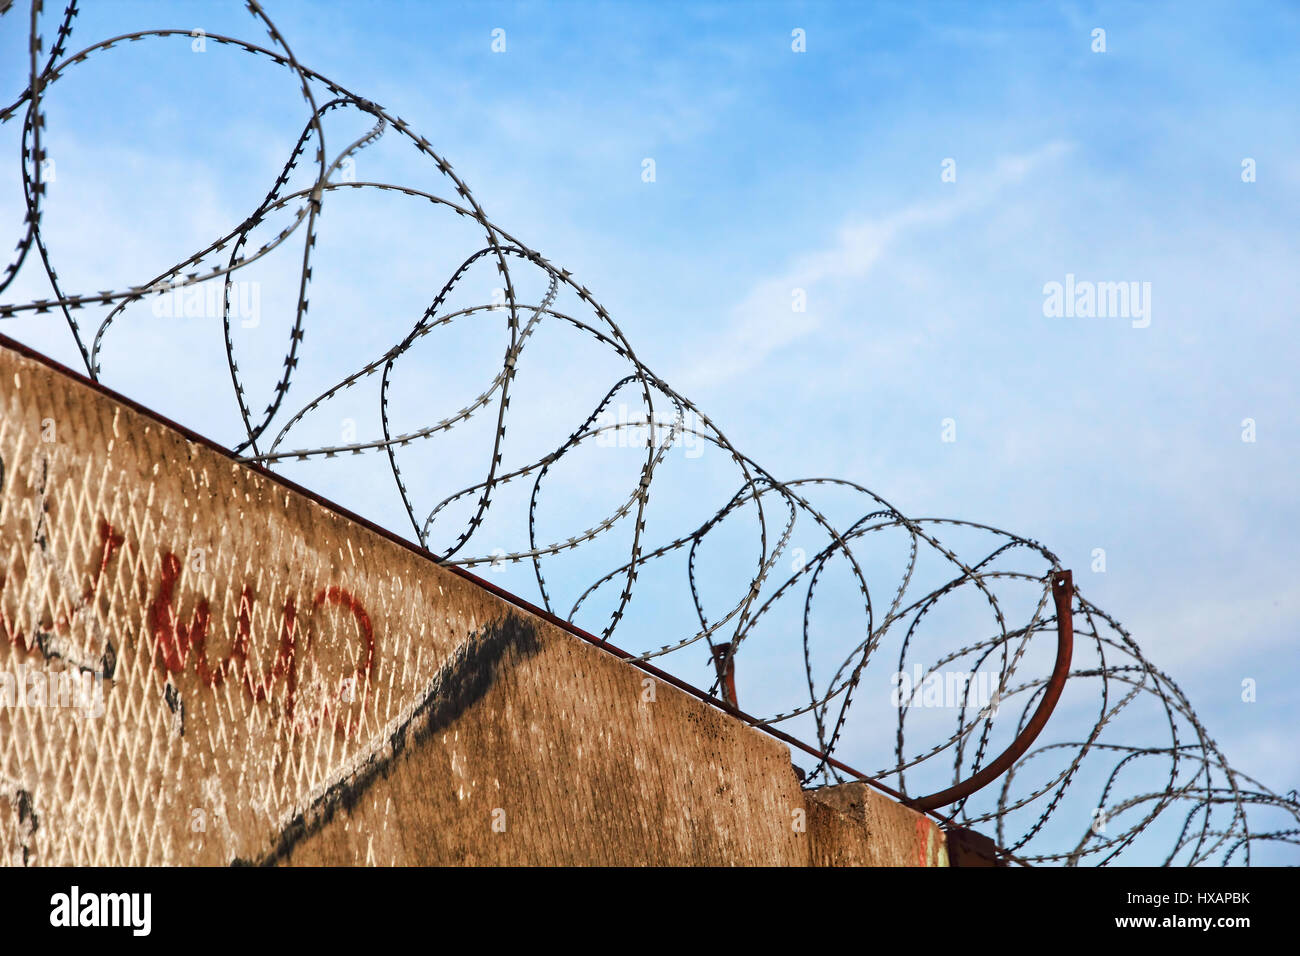 Barbed wire fence detail against of the blue sky taken closeup. - Stock Image